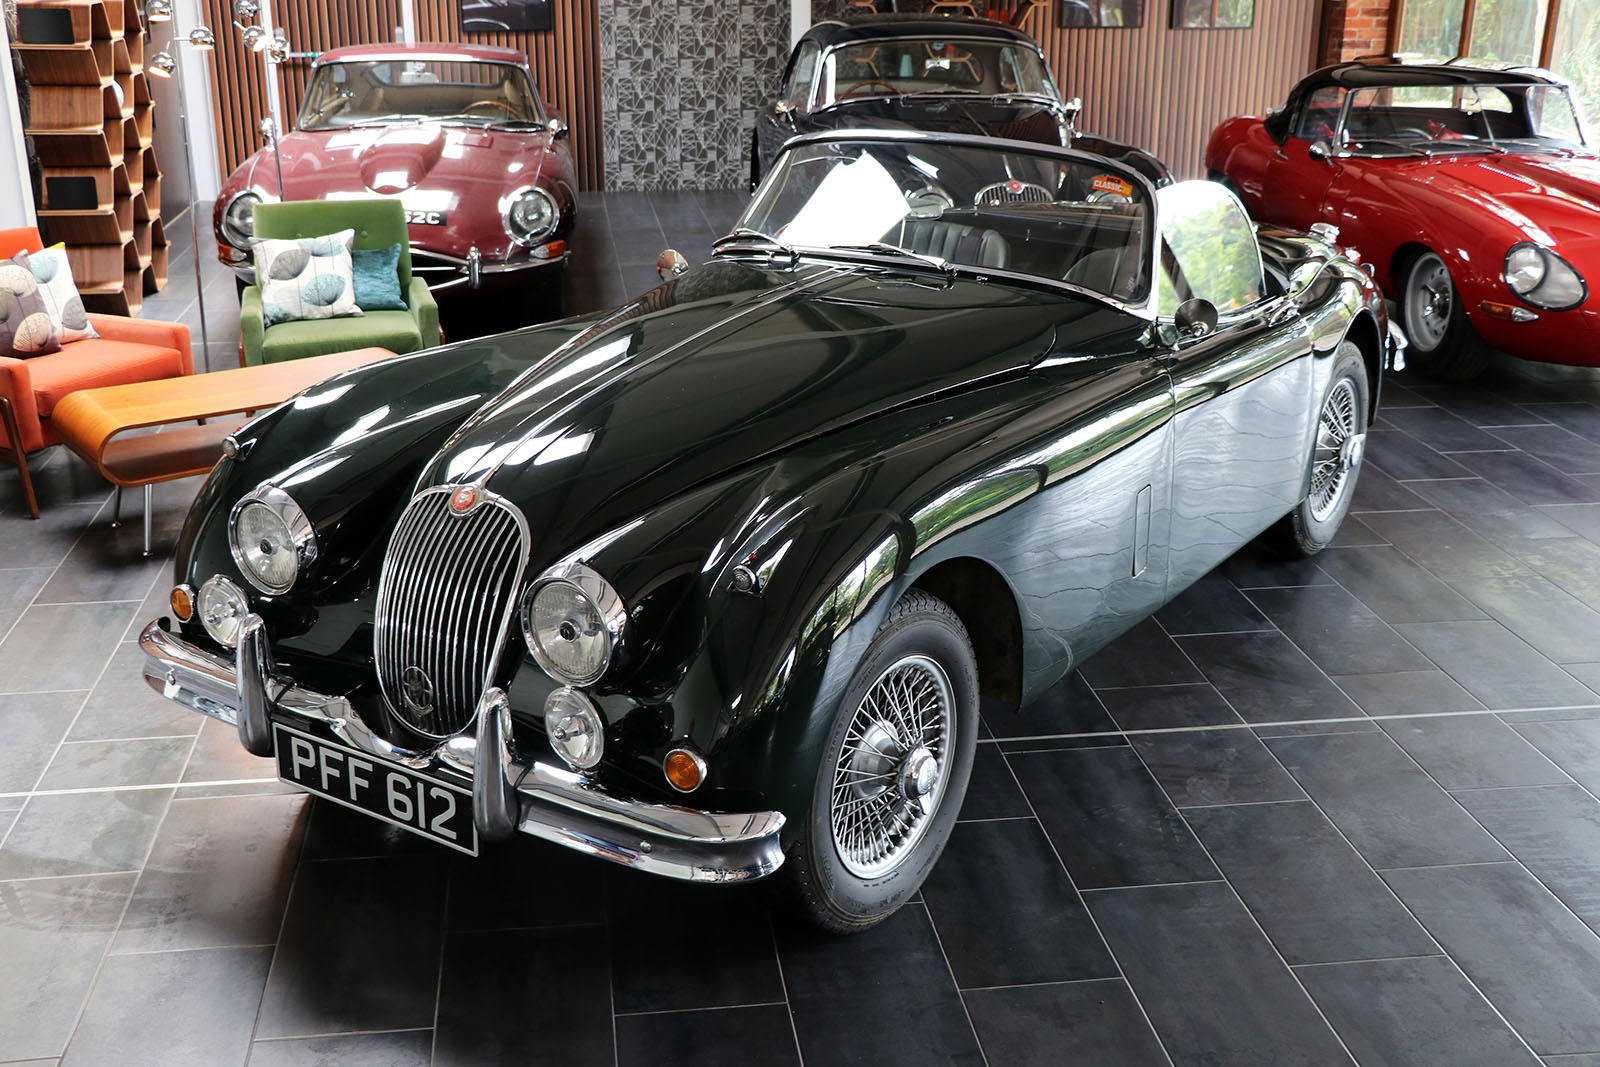 1959_green_XK150_3.8_DHC_sayer selection_wilkinson_1 web.jpg